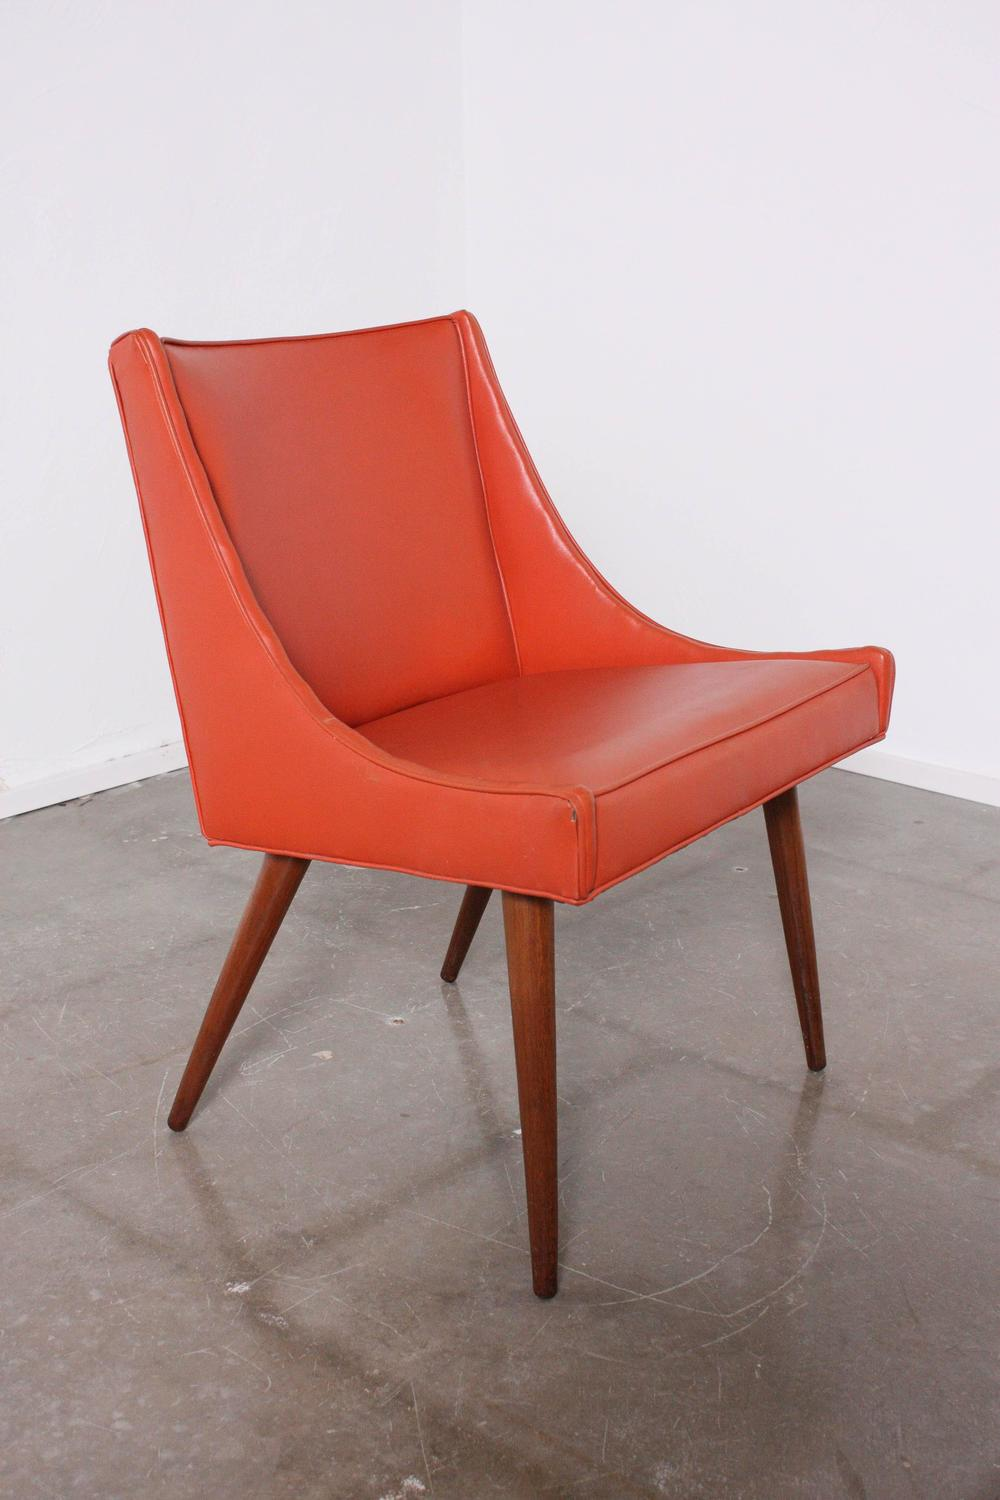 milo baughman slipper chair for sale at 1stdibs